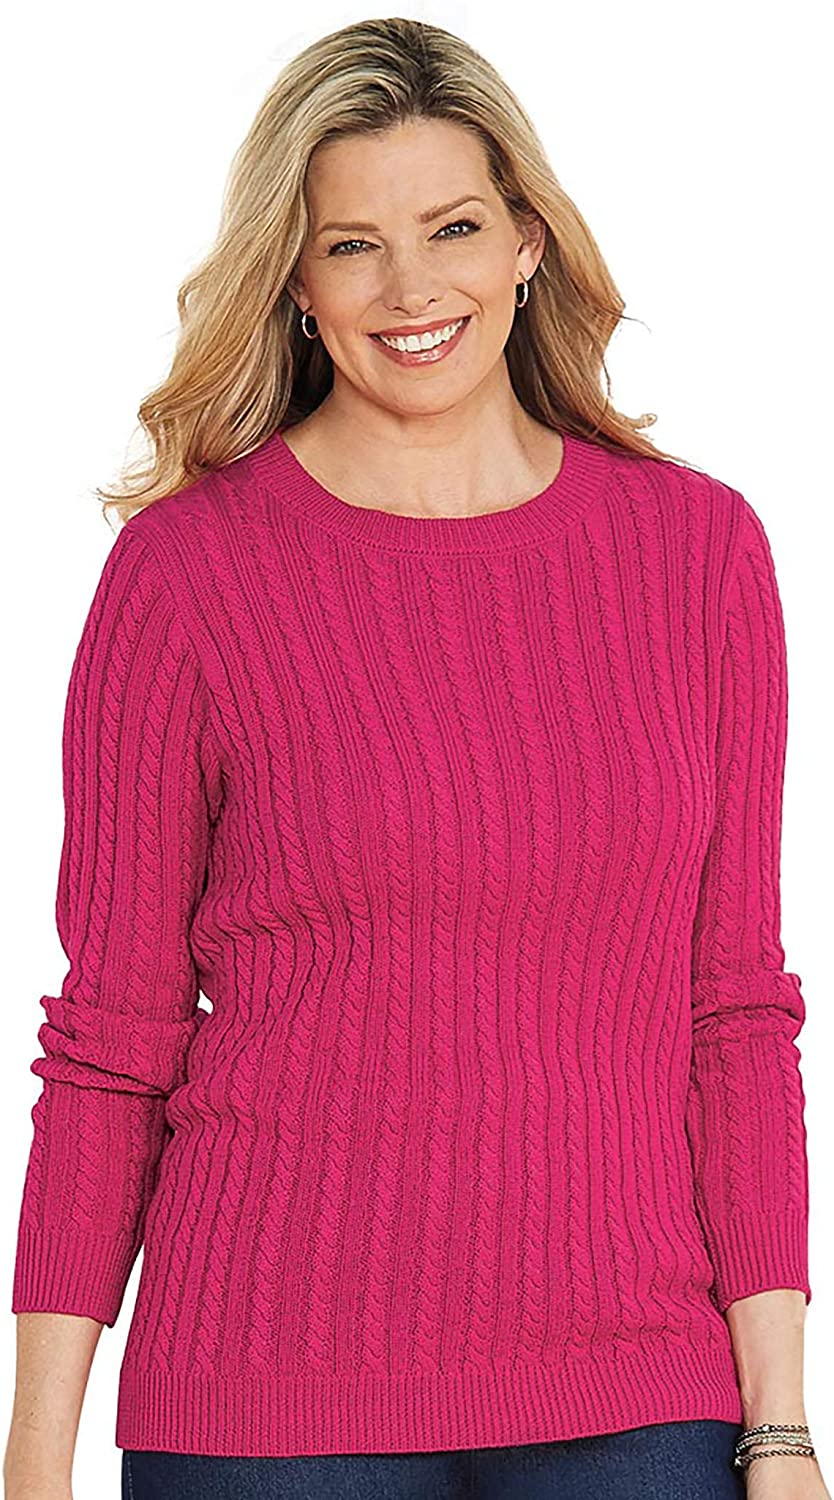 AmeriMark Womens Cable Knit Sweater Crew Neck Pullover Style in Solid Colors